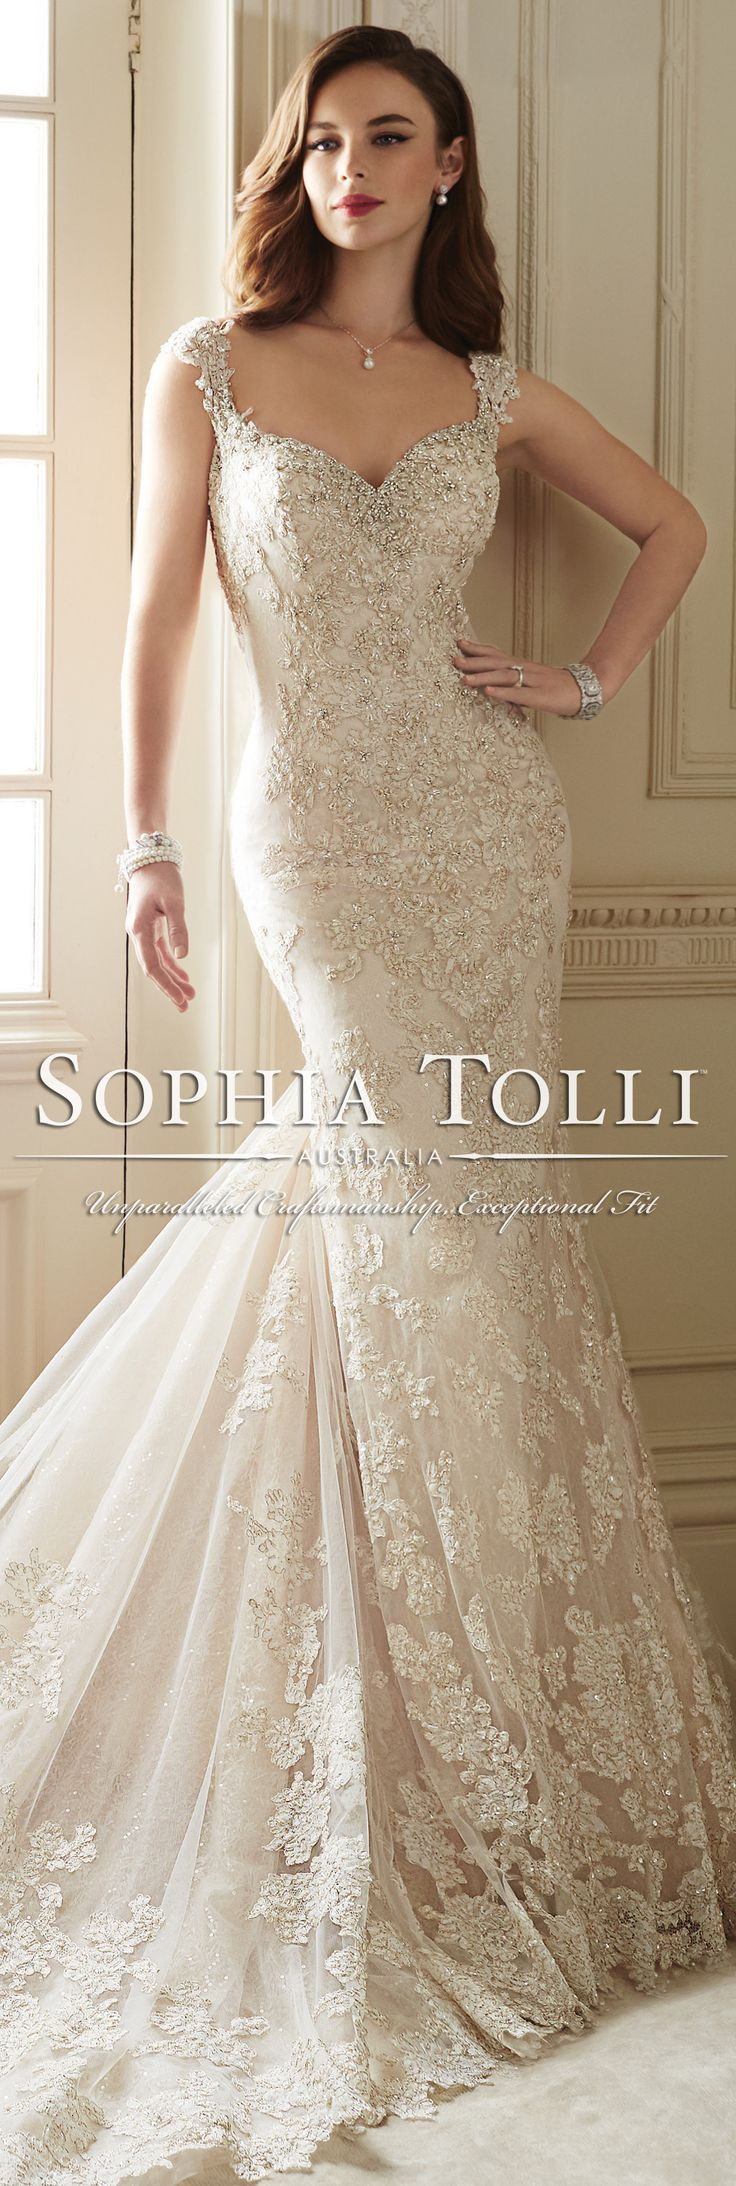 The Sophia Tolli Spring 2016 Wedding Dress Collection - Style No. Y11651 - Sultana #laceweddingdress